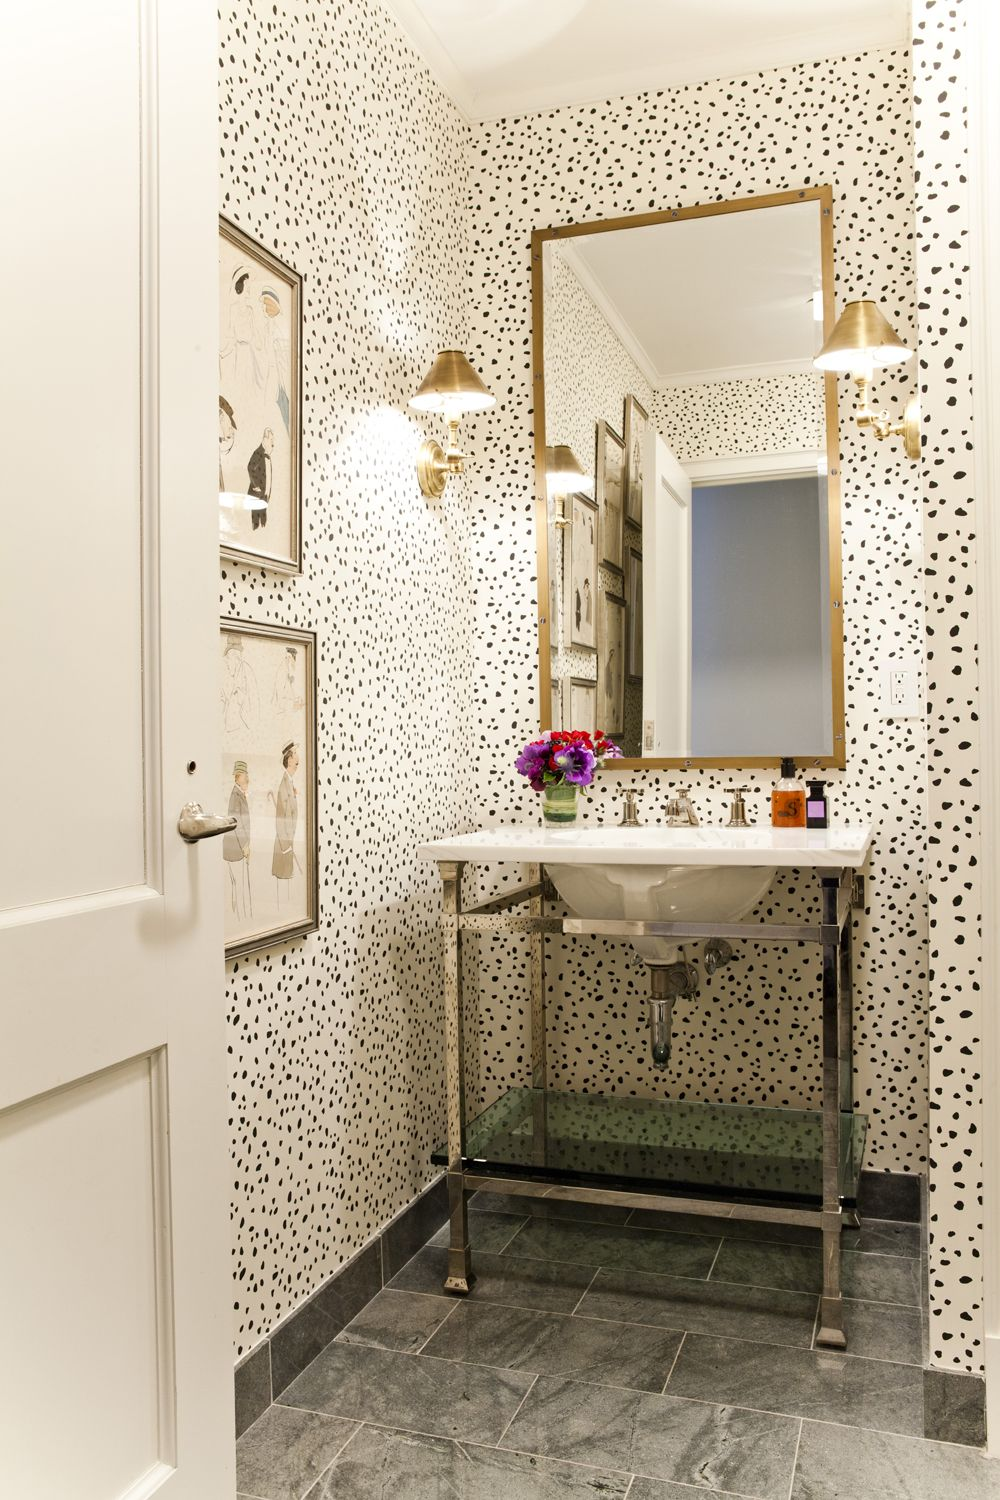 Step Inside This Cheery New York Home | Powder room ...